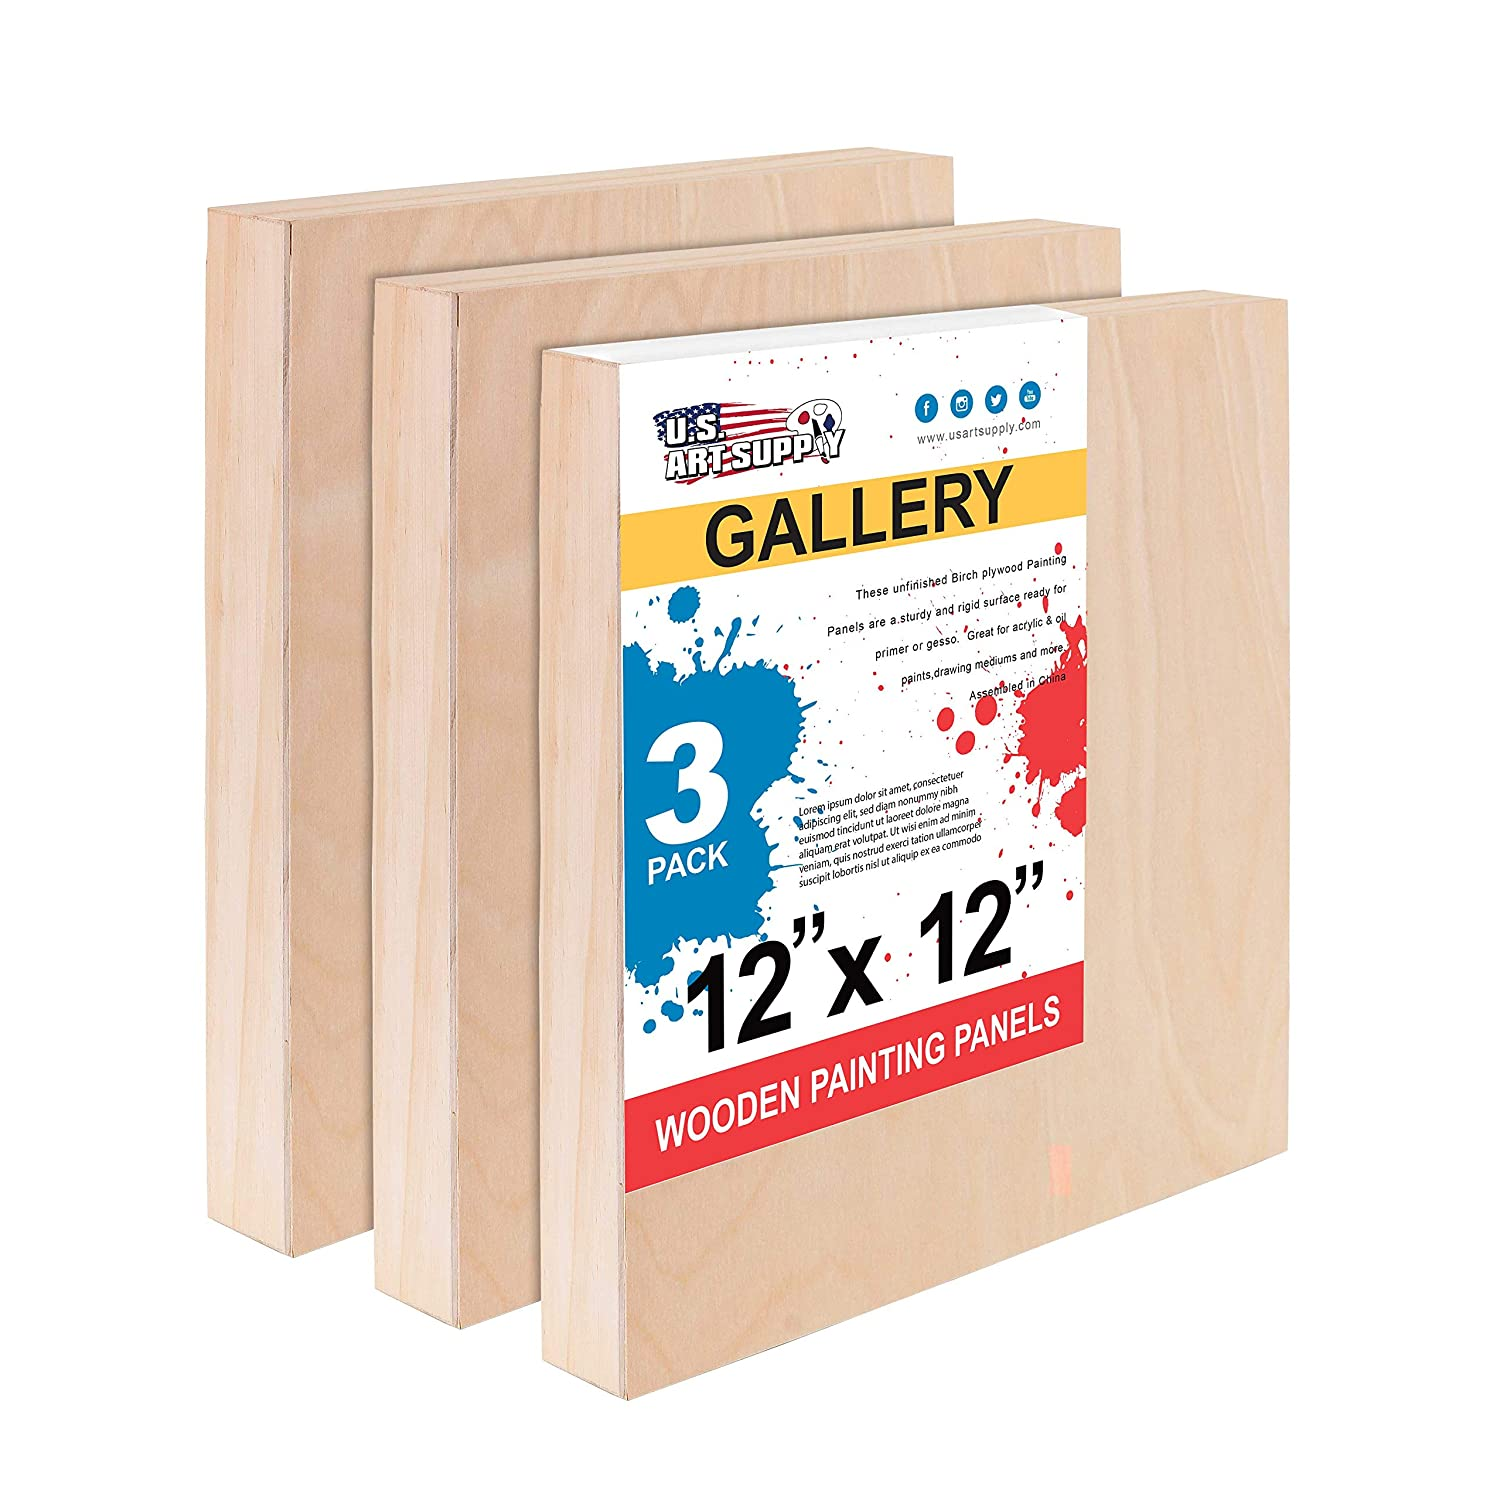 Art Supply 4 x 6 Birch Wood Paint Pouring Panel Boards Acrylic - Artist Wooden Wall Canvases Encaustic Pack of 5 Watercolor Painting Mixed-Media Craft U.S Oil Studio 3//4 Deep Cradle